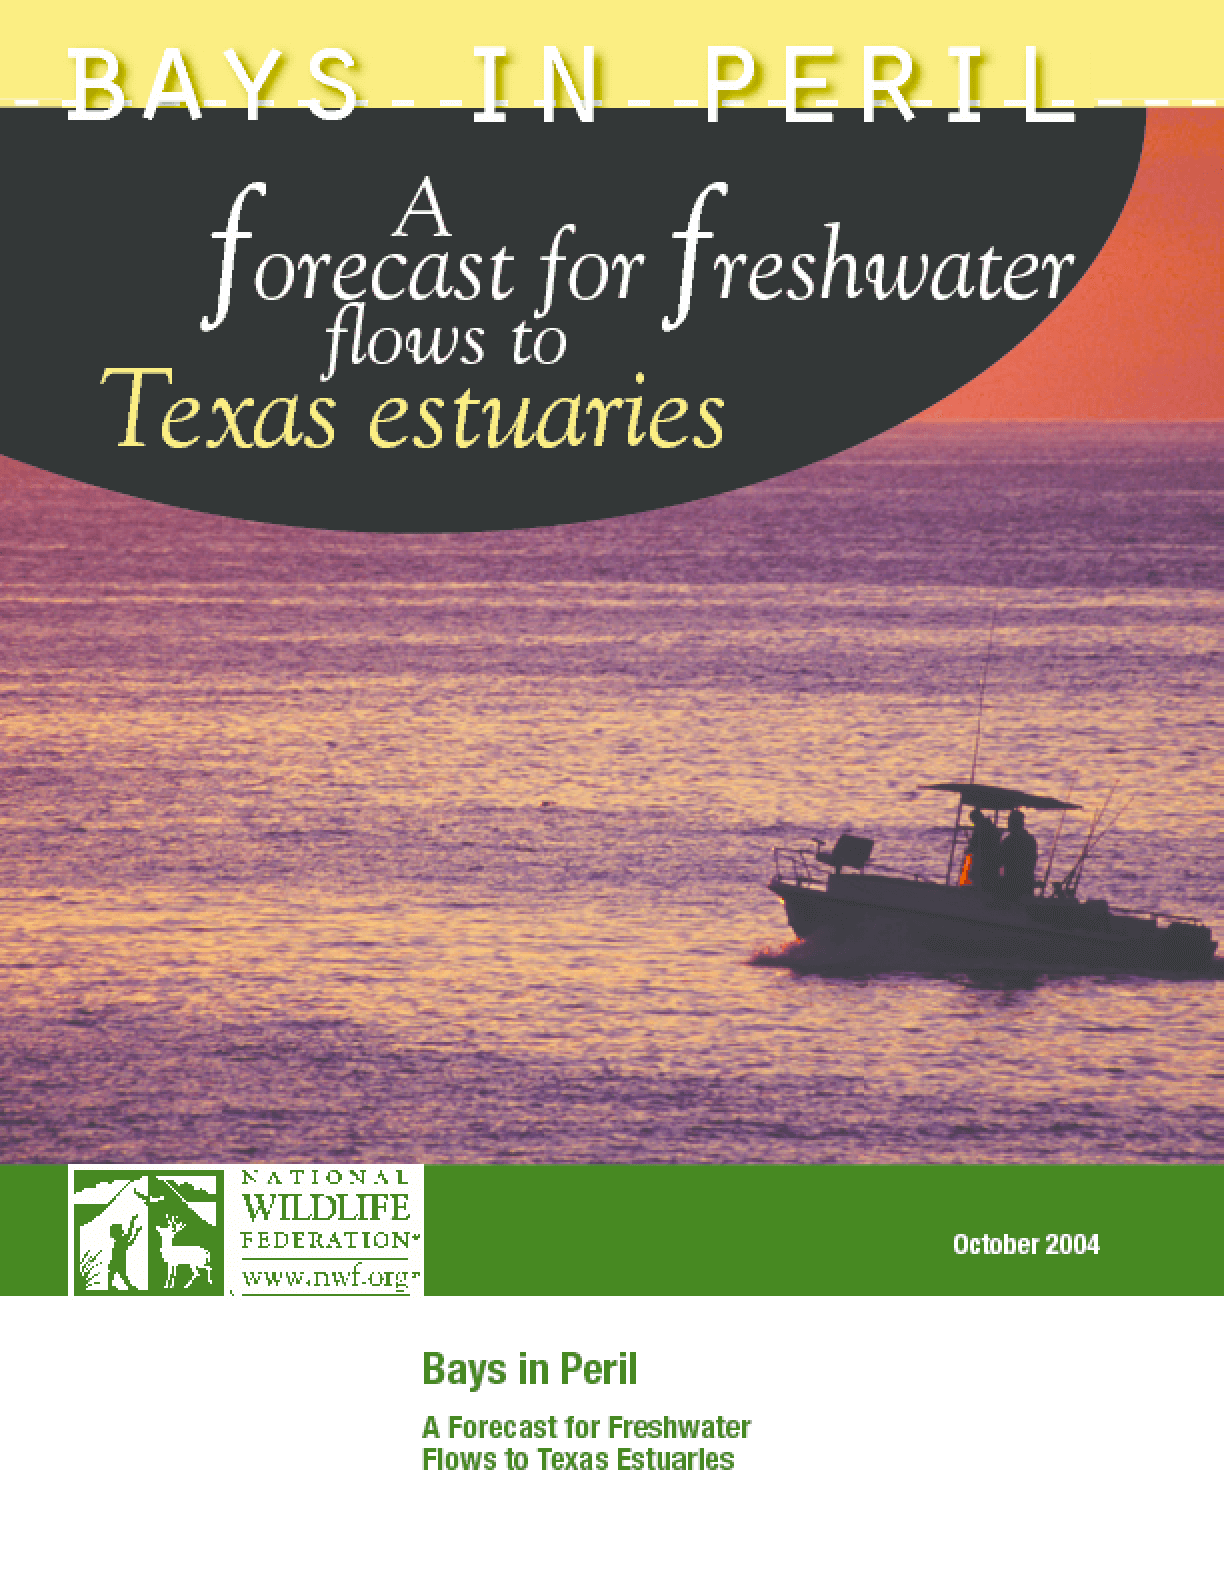 Bays in Peril: A Forecast for Freshwater Flows to Texas Estuaries